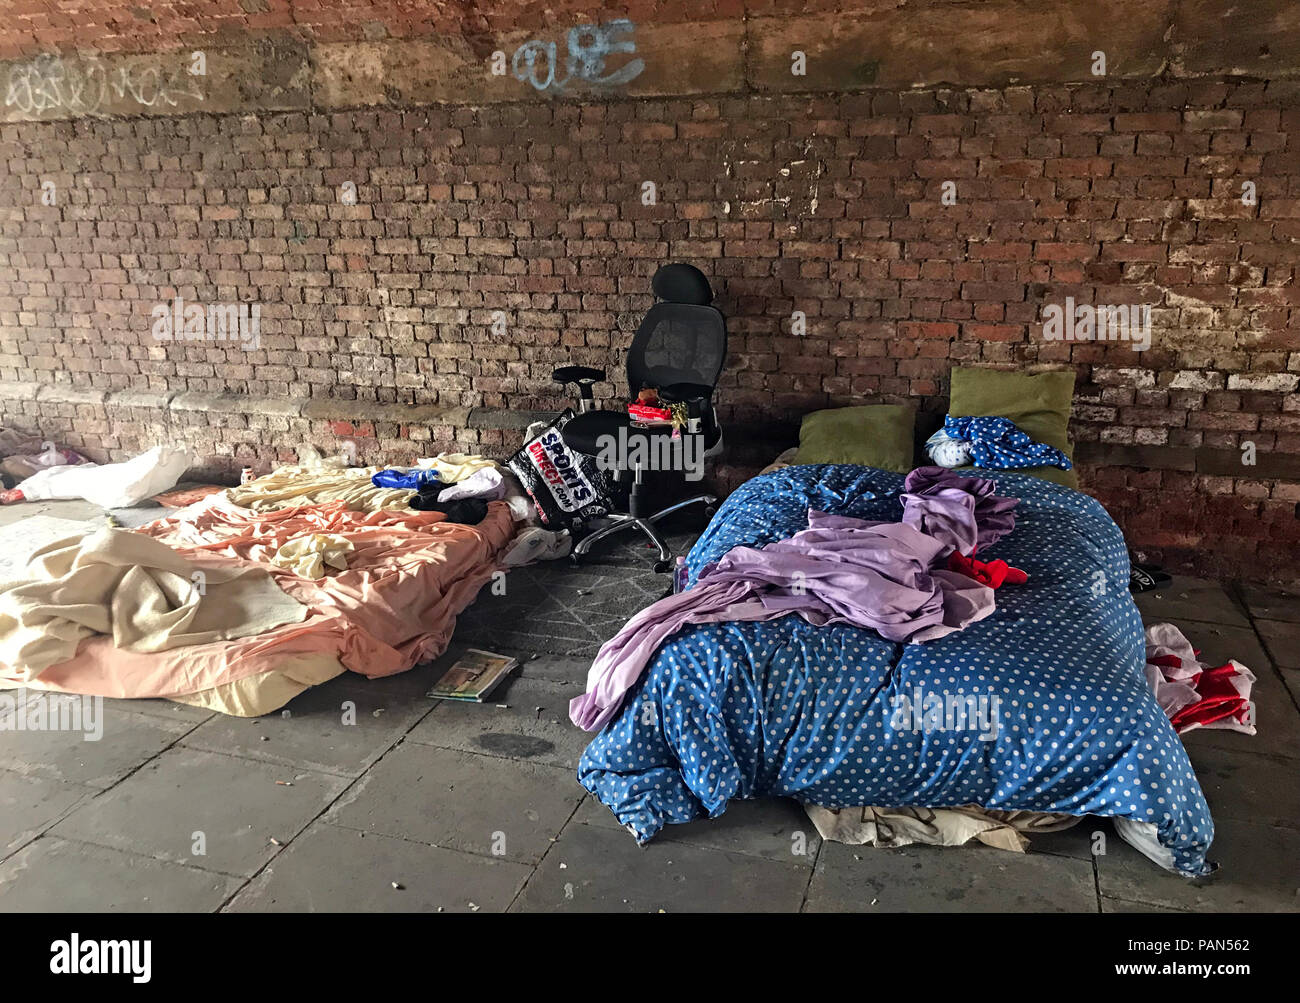 @HotpixUK,GoTonySmith,Dry Place,dry,place,mattress,poor,destitute,Housing,human right,under railway viaduct,Castlefield,Manchester,North West England,UK,England,North West,Homeless,Rough Sleeper,Bed,City,Housing Is A Human Right,Is a human right,belongings,railway bridge,bridge,under bridge,sleeping under bridge,sleeping in Manchester,rough sleeping,rough sleeper,rough sleeping on the rise,rough sleeping rising,rising rough sleeping,taking shelter,shelter,sheltering,winter homeless,Manchester Railway Bridge,homelessness